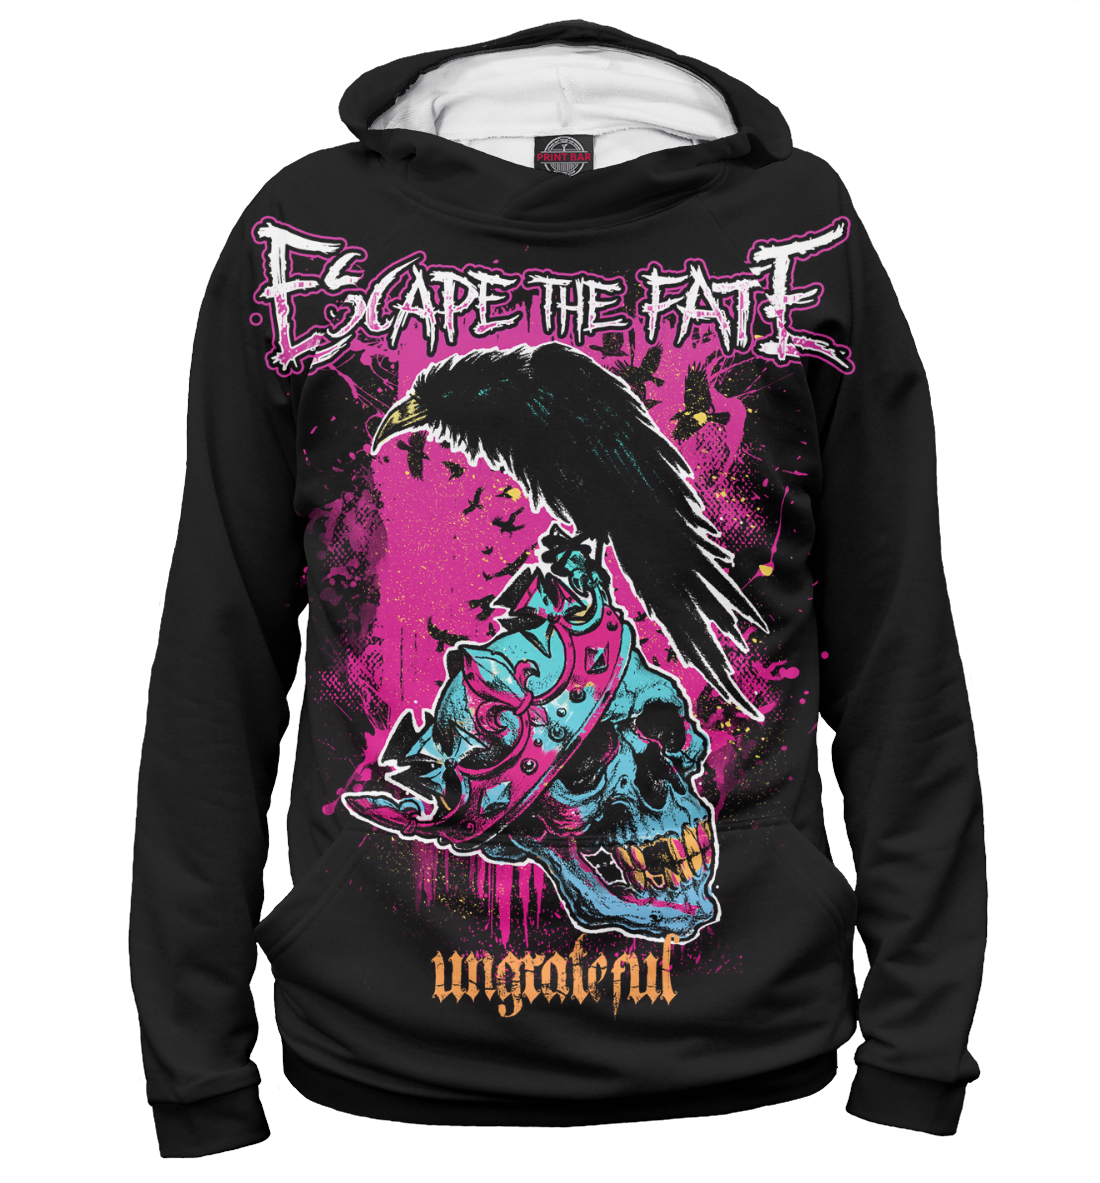 Купить Escape The Fate, Printbar, Худи, MZK-261706-hud-2